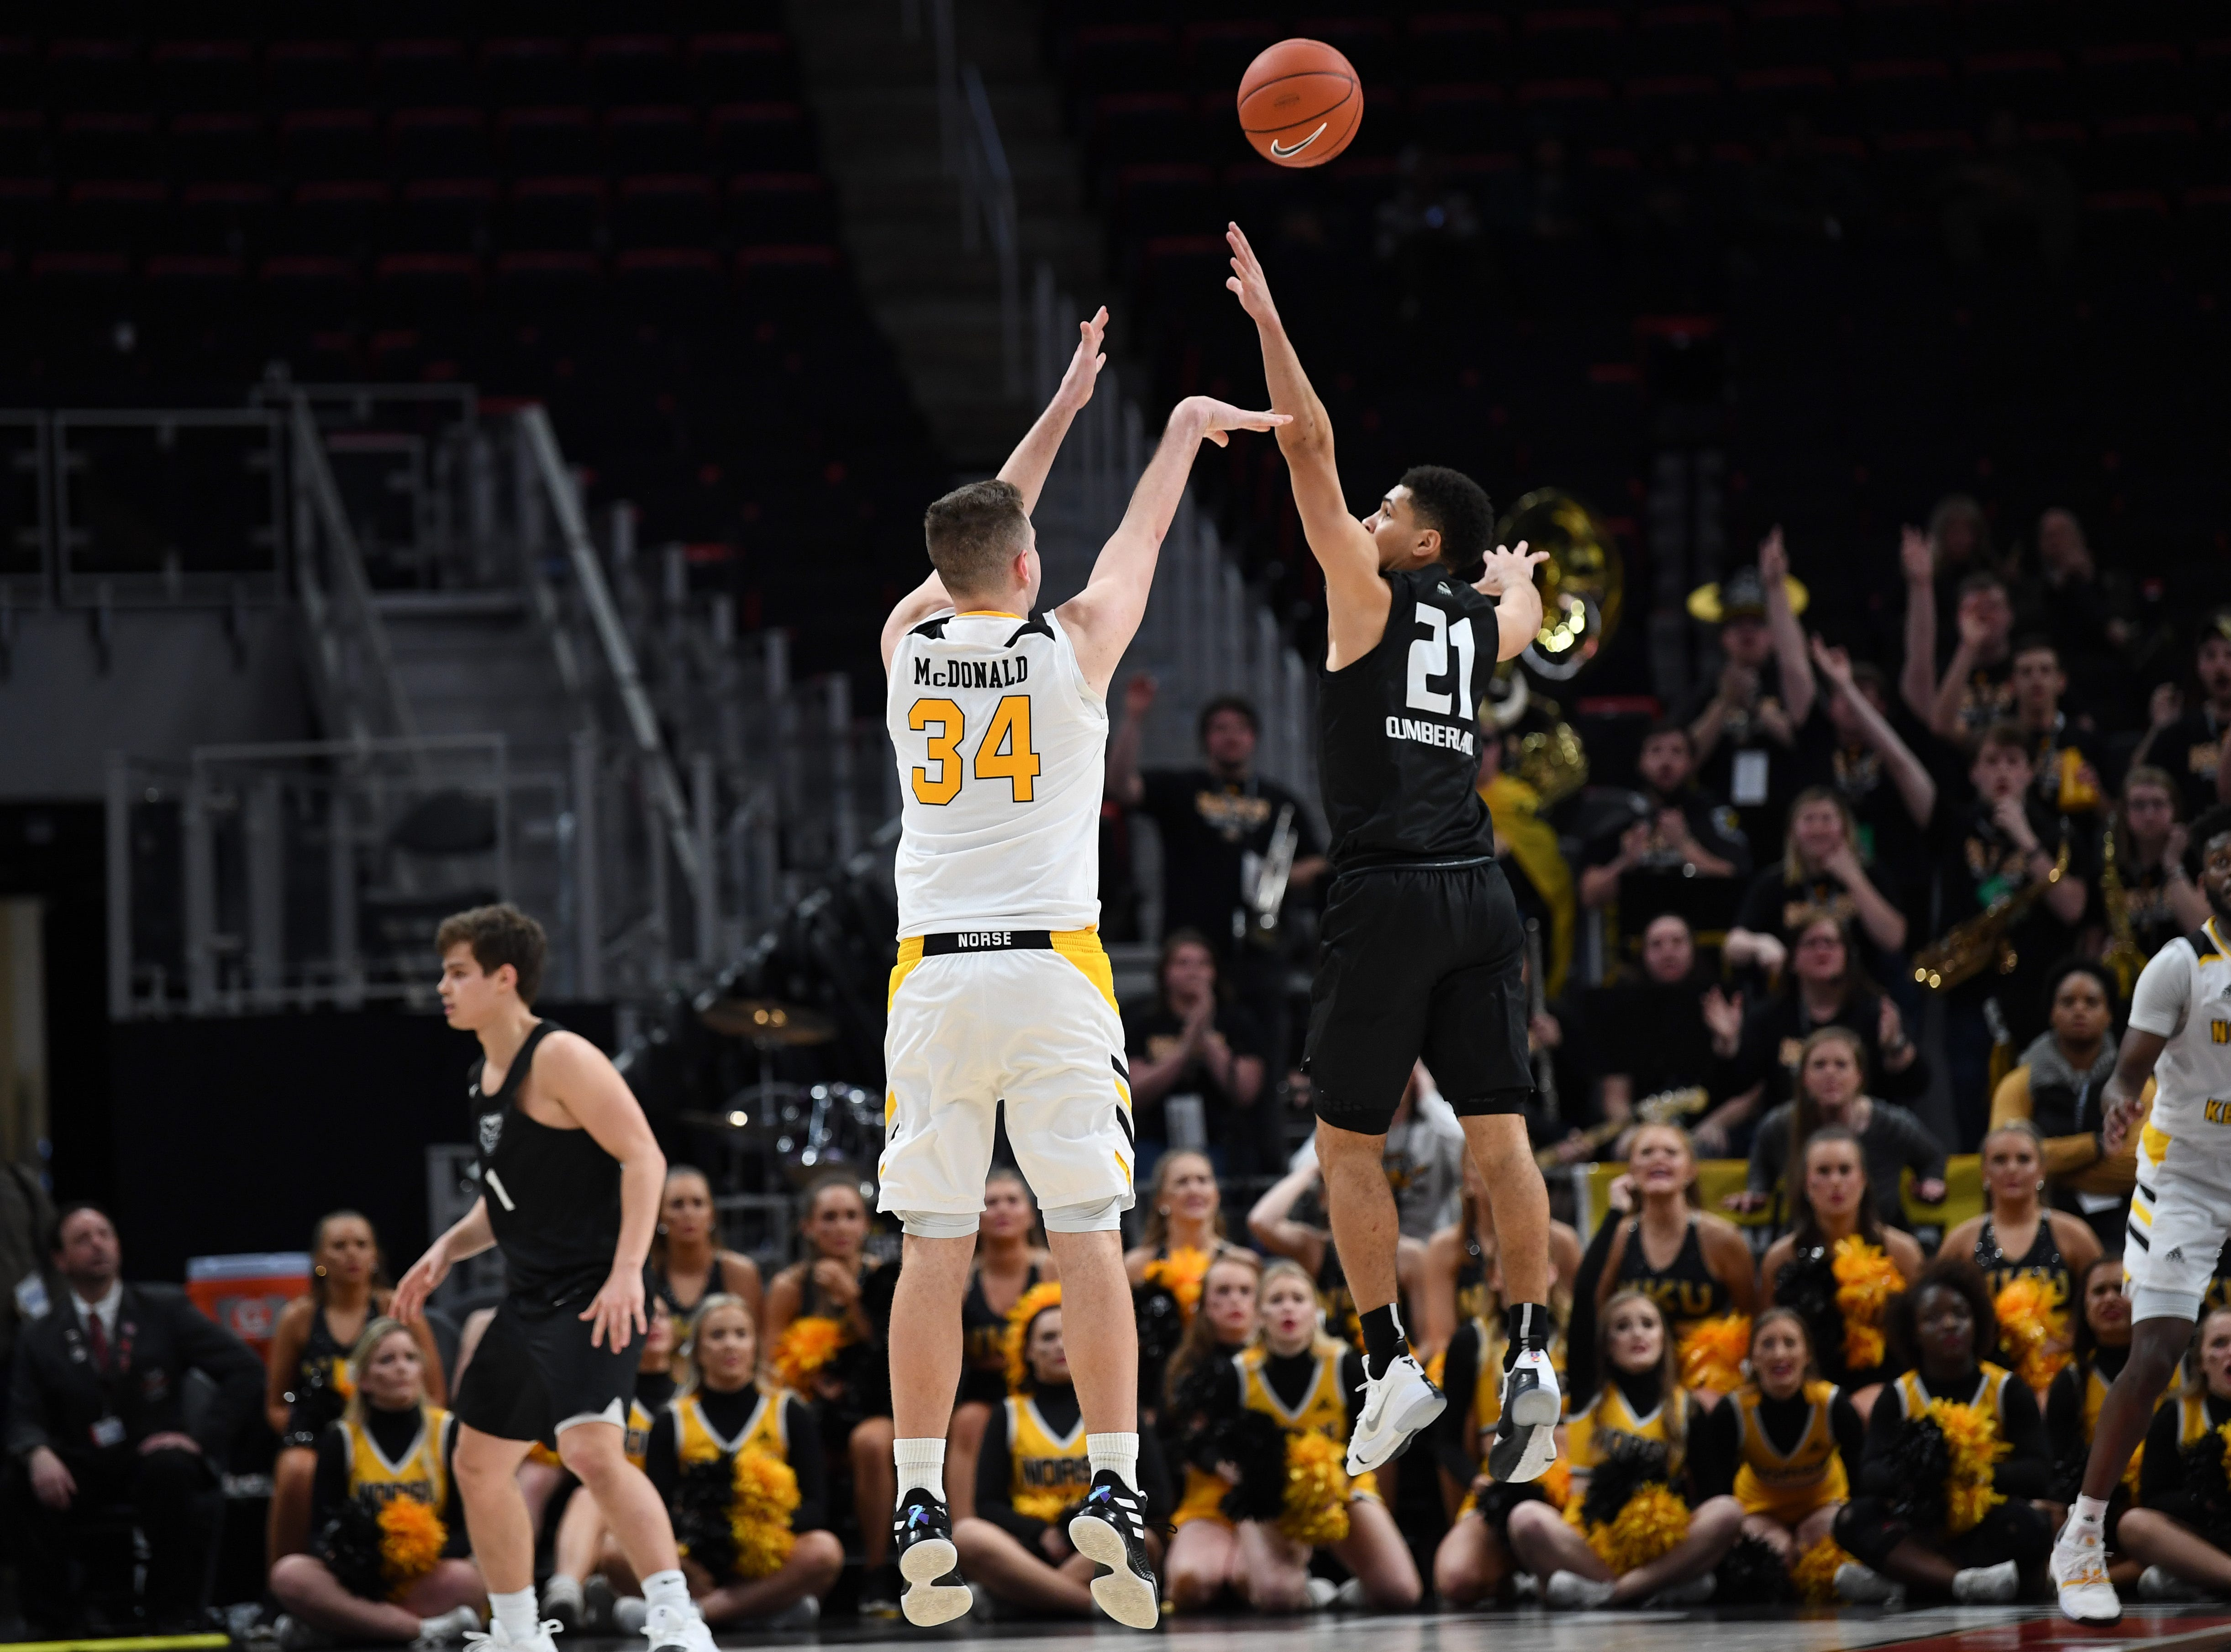 Northern Kentucky Norse forward Drew McDonald, left, makes the game winning shot, 64-63, against the Oakland Golden Grizzlies near the end of the second half of their Horizon League semifinal game at Little Caesars Arena in Detroit, Monday, Mar. 11, 2019.  Northern Kentucky defeated Oakland 64-63.